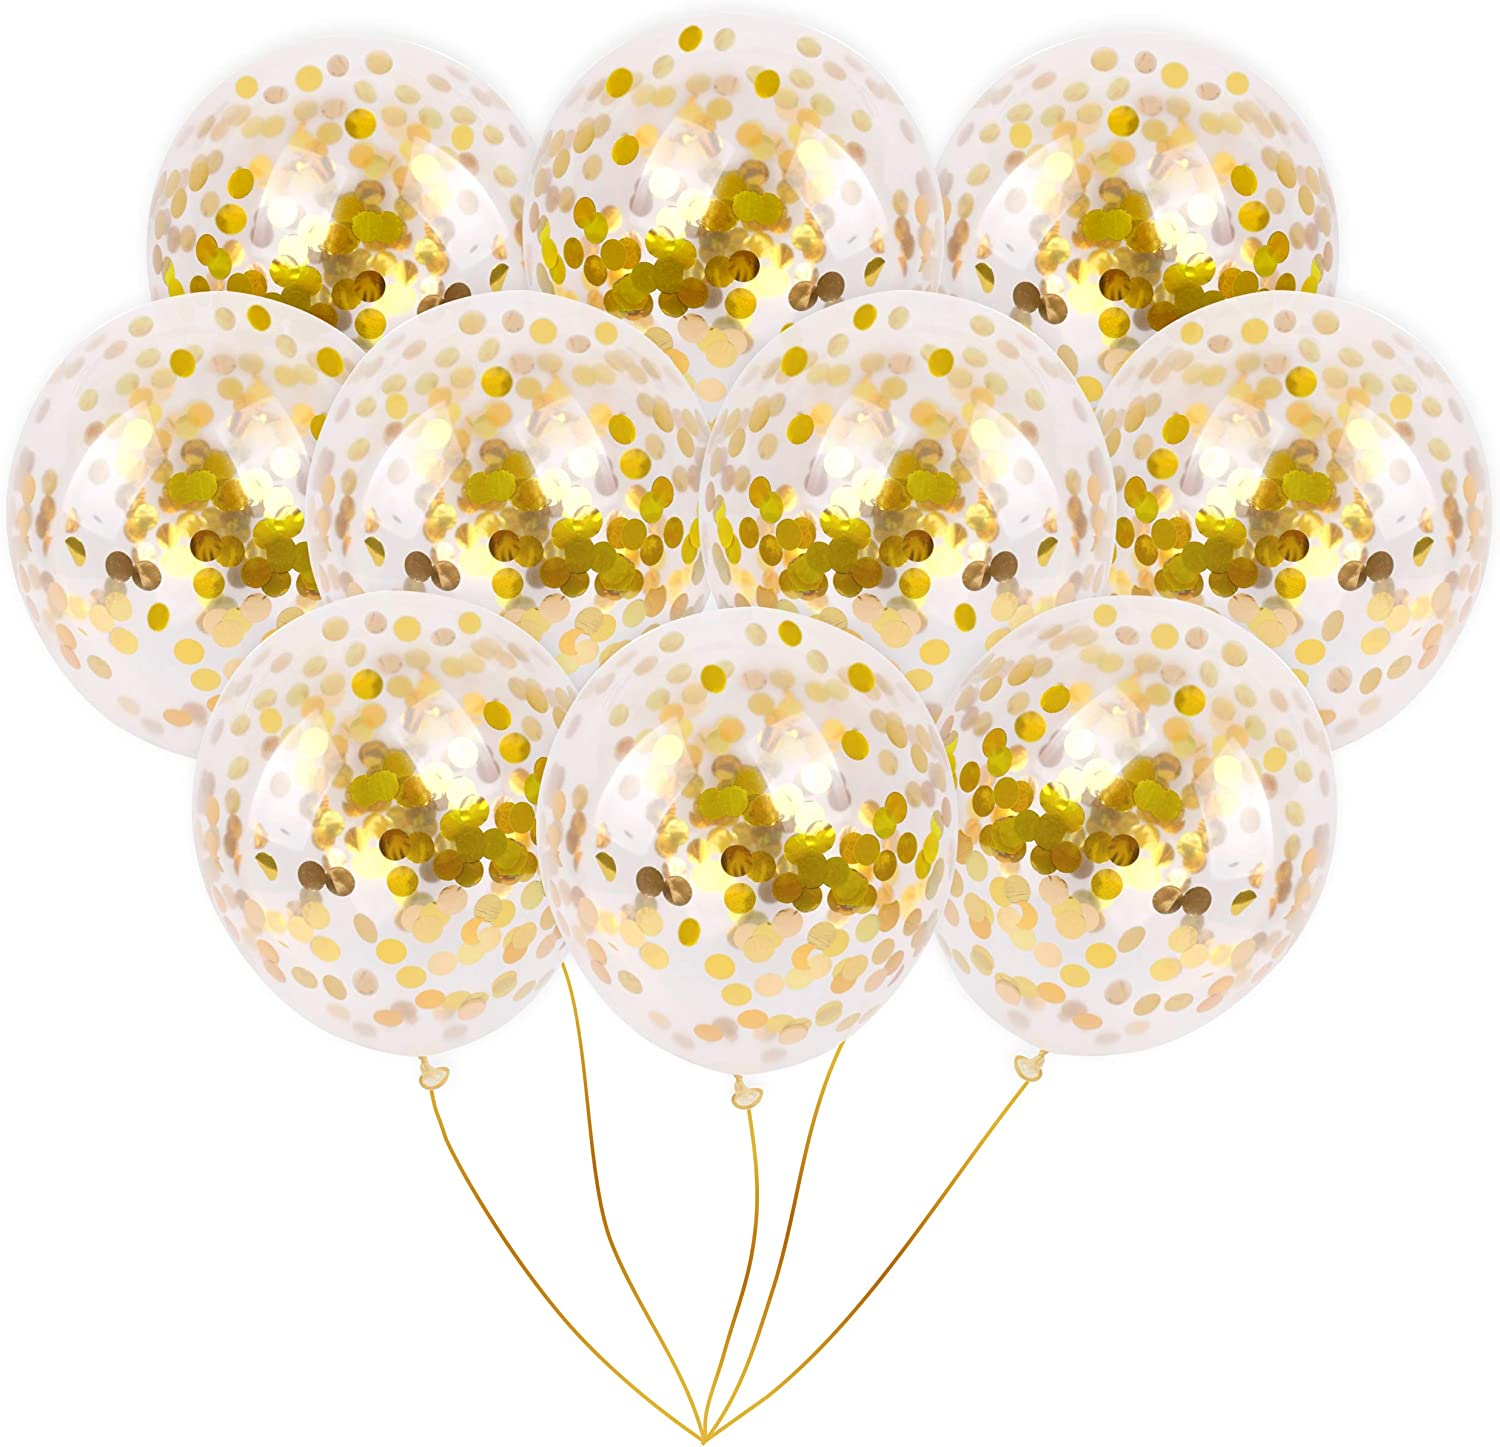 Wedding Engagement Birthday Party Events Modern Jubilee Gold Foil Confetti Balloons Vibrant Confetti Pre-Filled 10 Pack Gold, 18 Inches